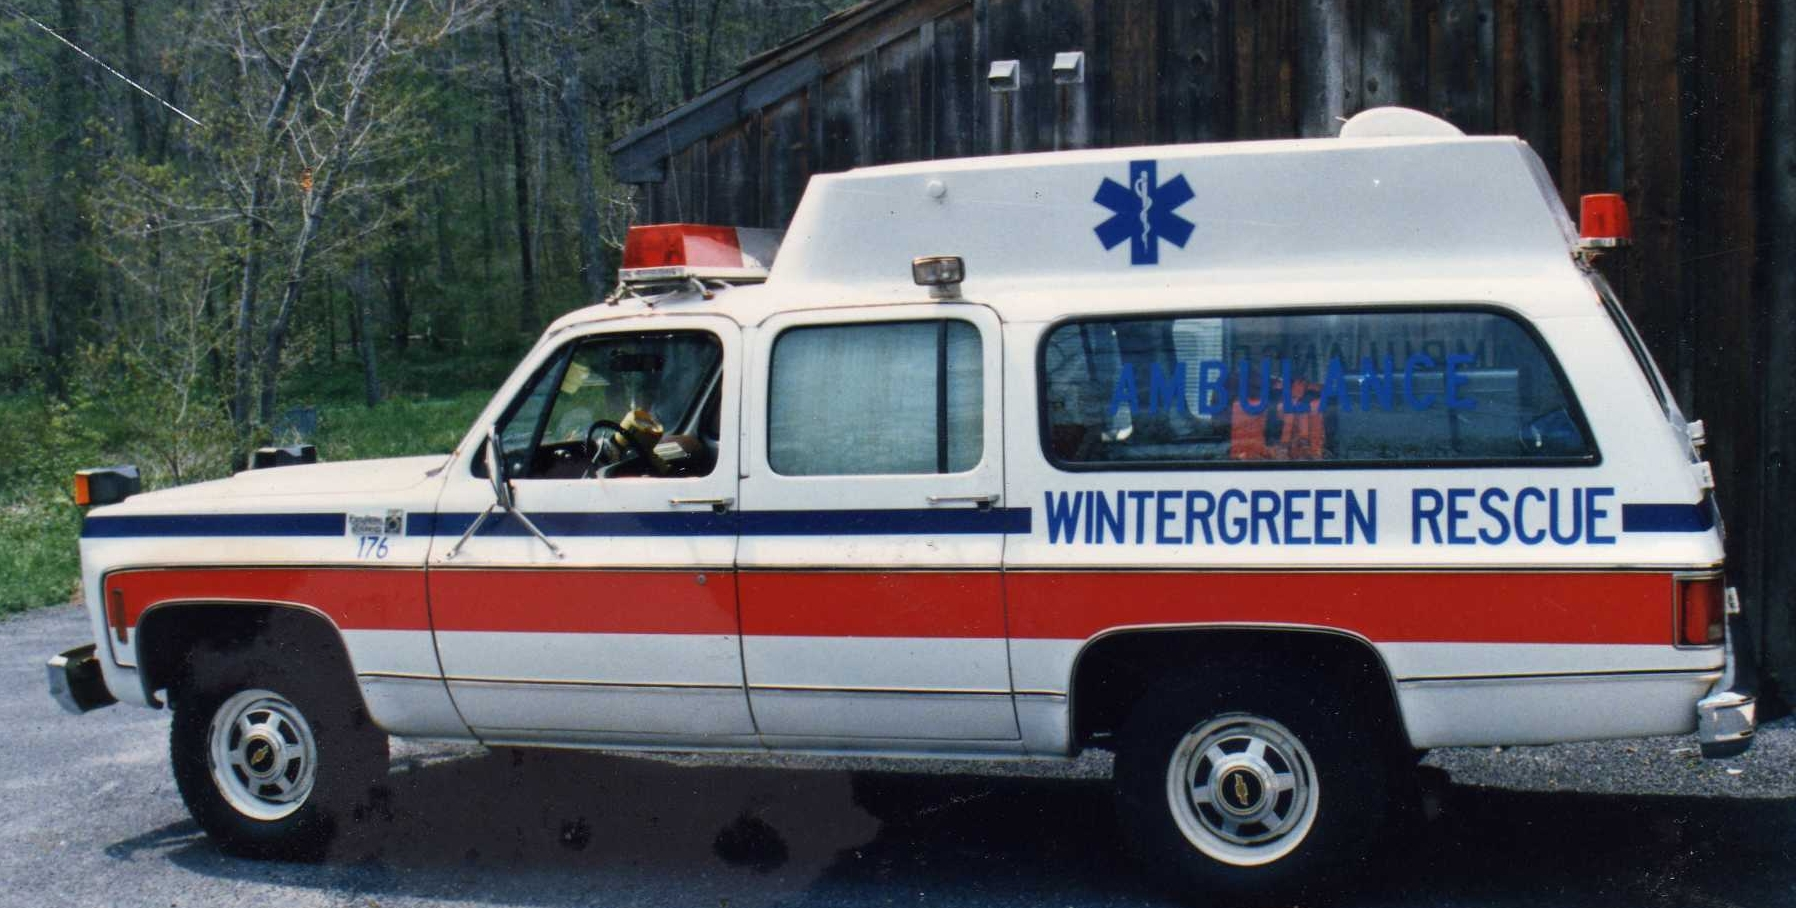 One of the first rescue transports at Wintergreen